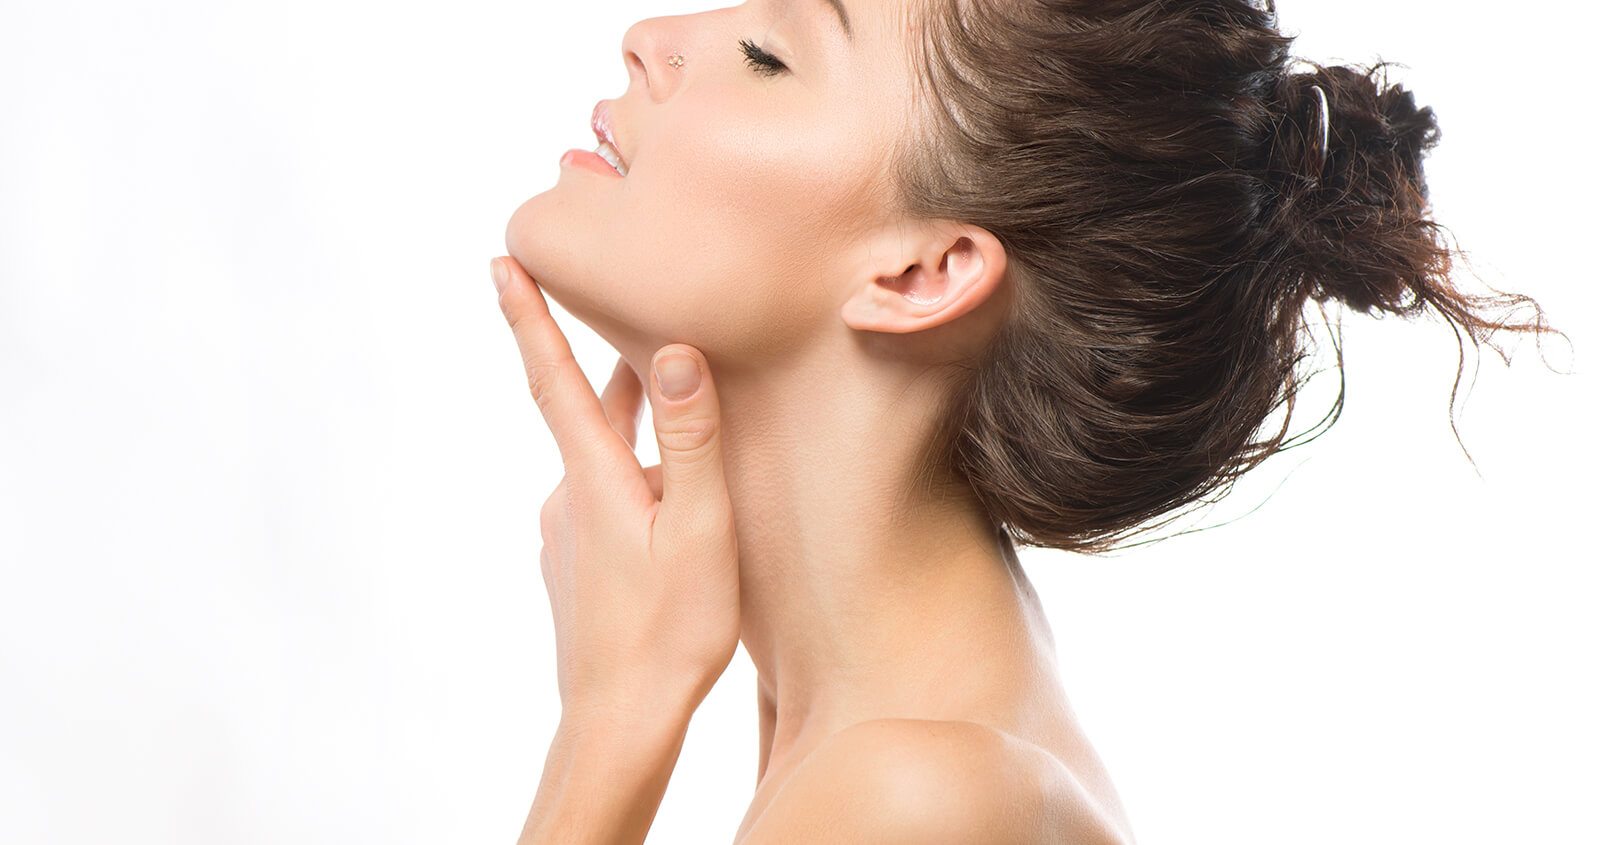 In New York City Area Specialist Shares the Cost and Benefits of Double Chin, Single Focus of Kybella Injections